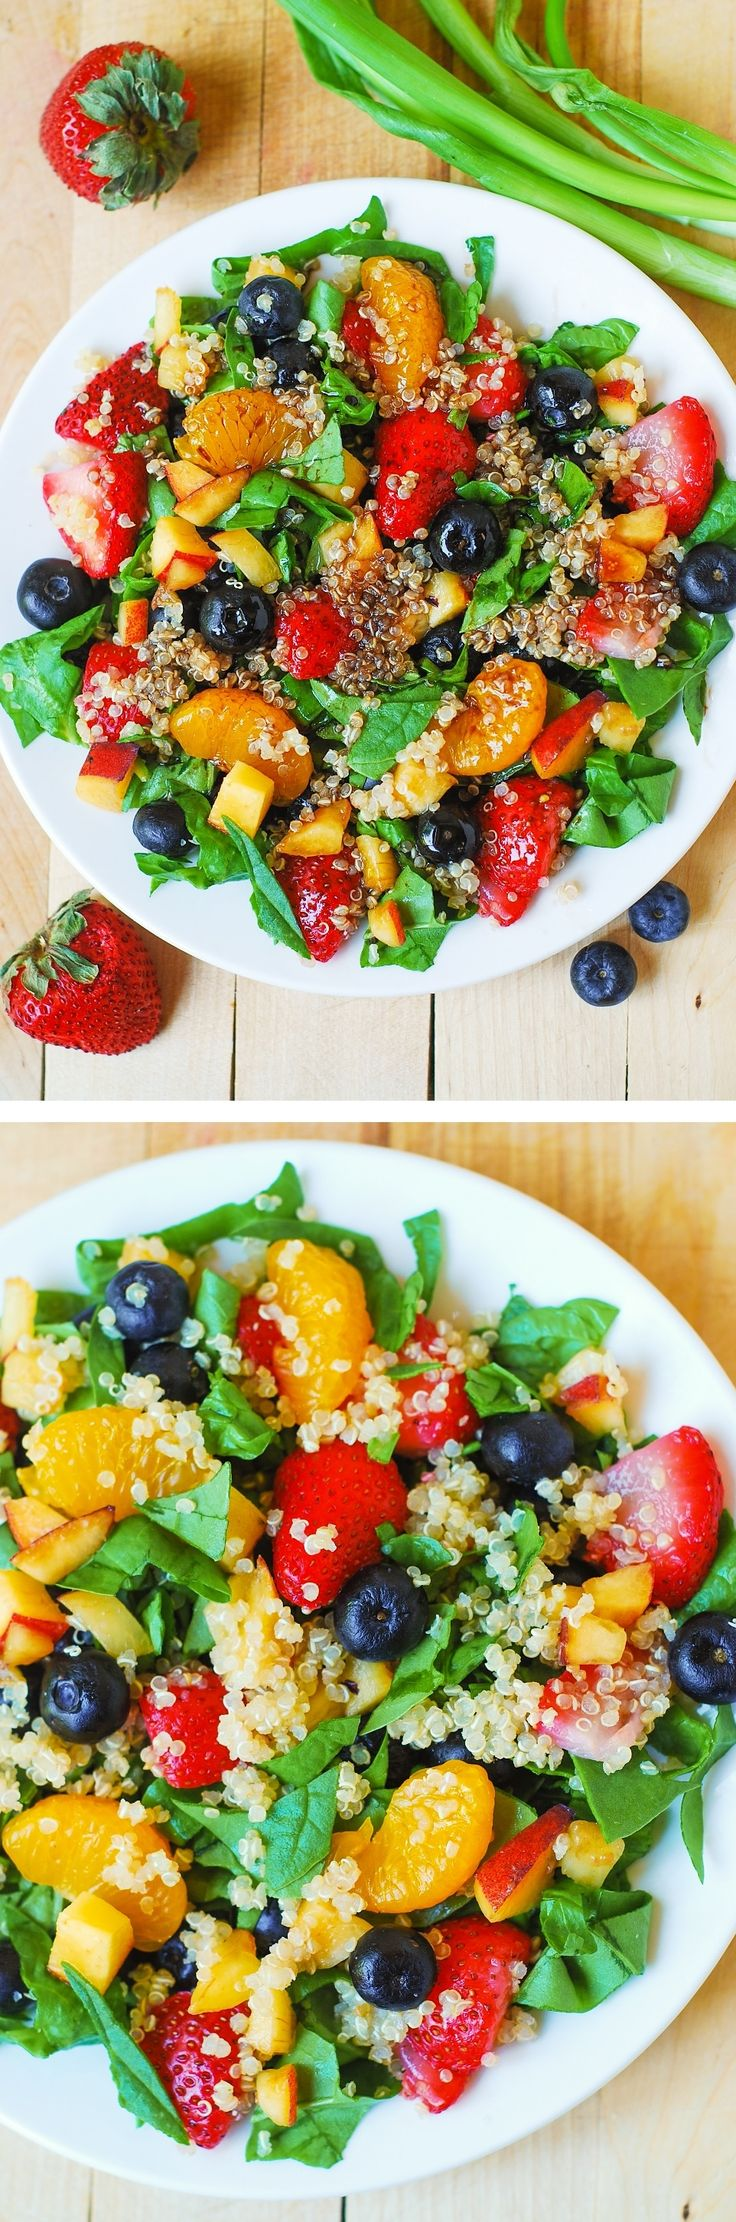 SPRING SALAD: Quinoa salad with spinach, strawberries, blueberries, and peaches, in a homemade Balsamic vinaigrette dressing. This recipe is vegetarian, vegan, gluten free, healthy, and just plainly delicious!